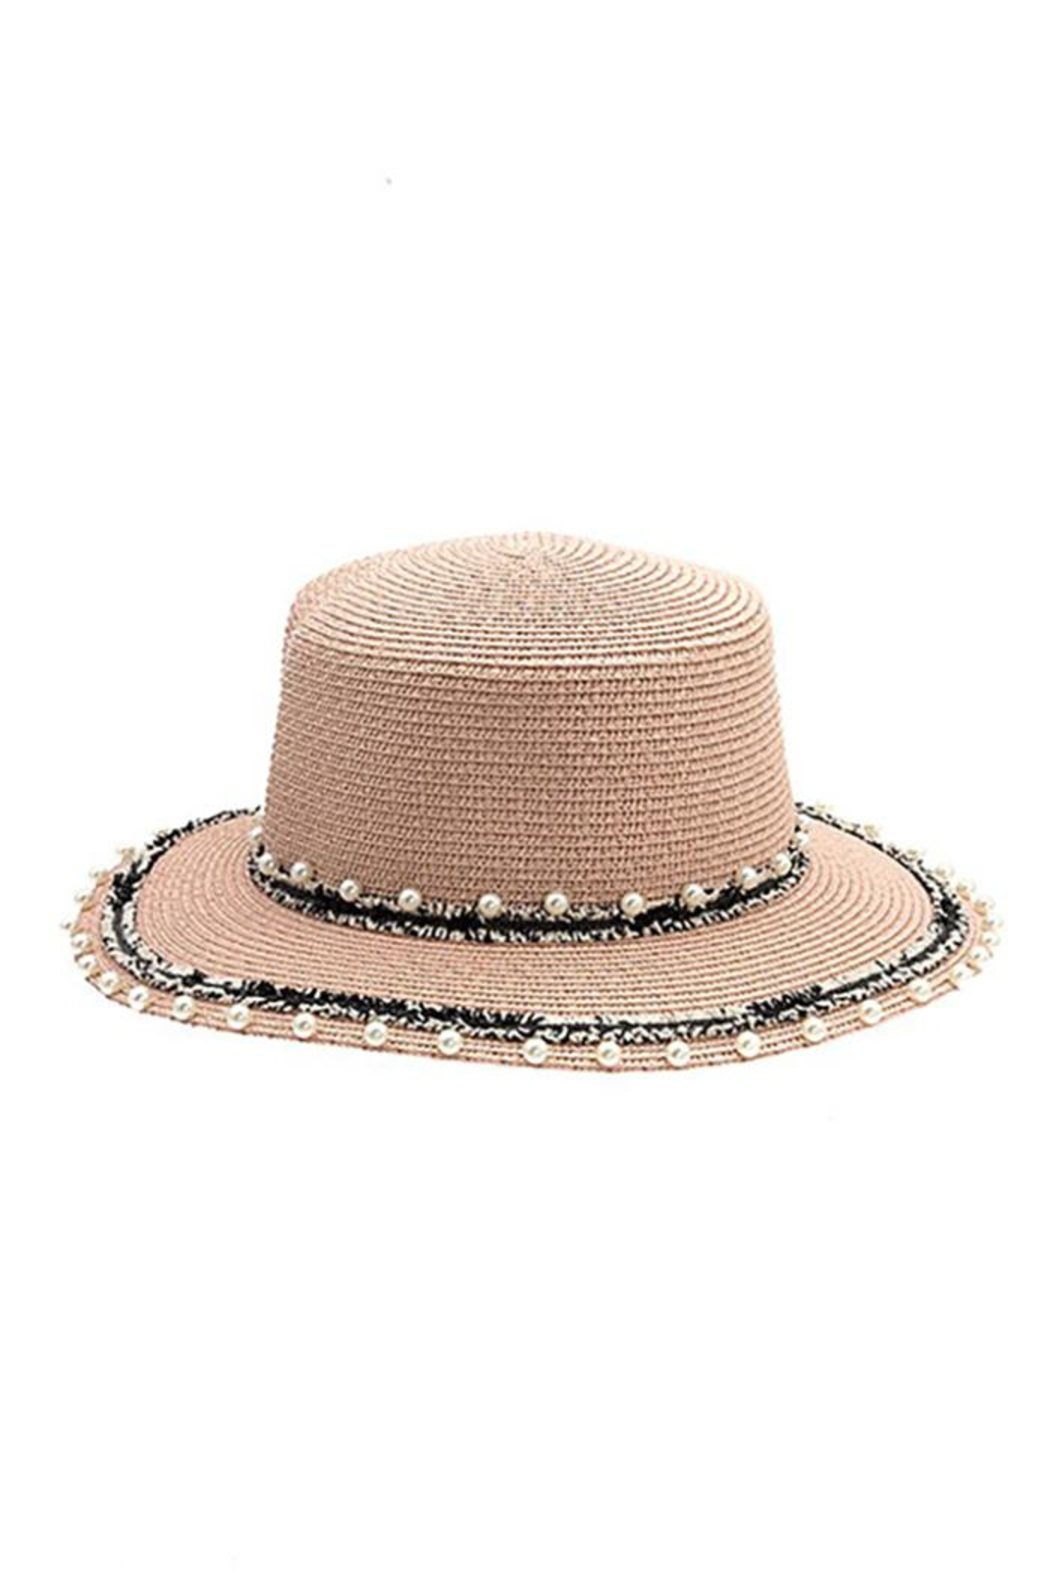 Andrea Bijoux Pearl Accent Brim Fashion Homburg Straw Hat - Front Full Image